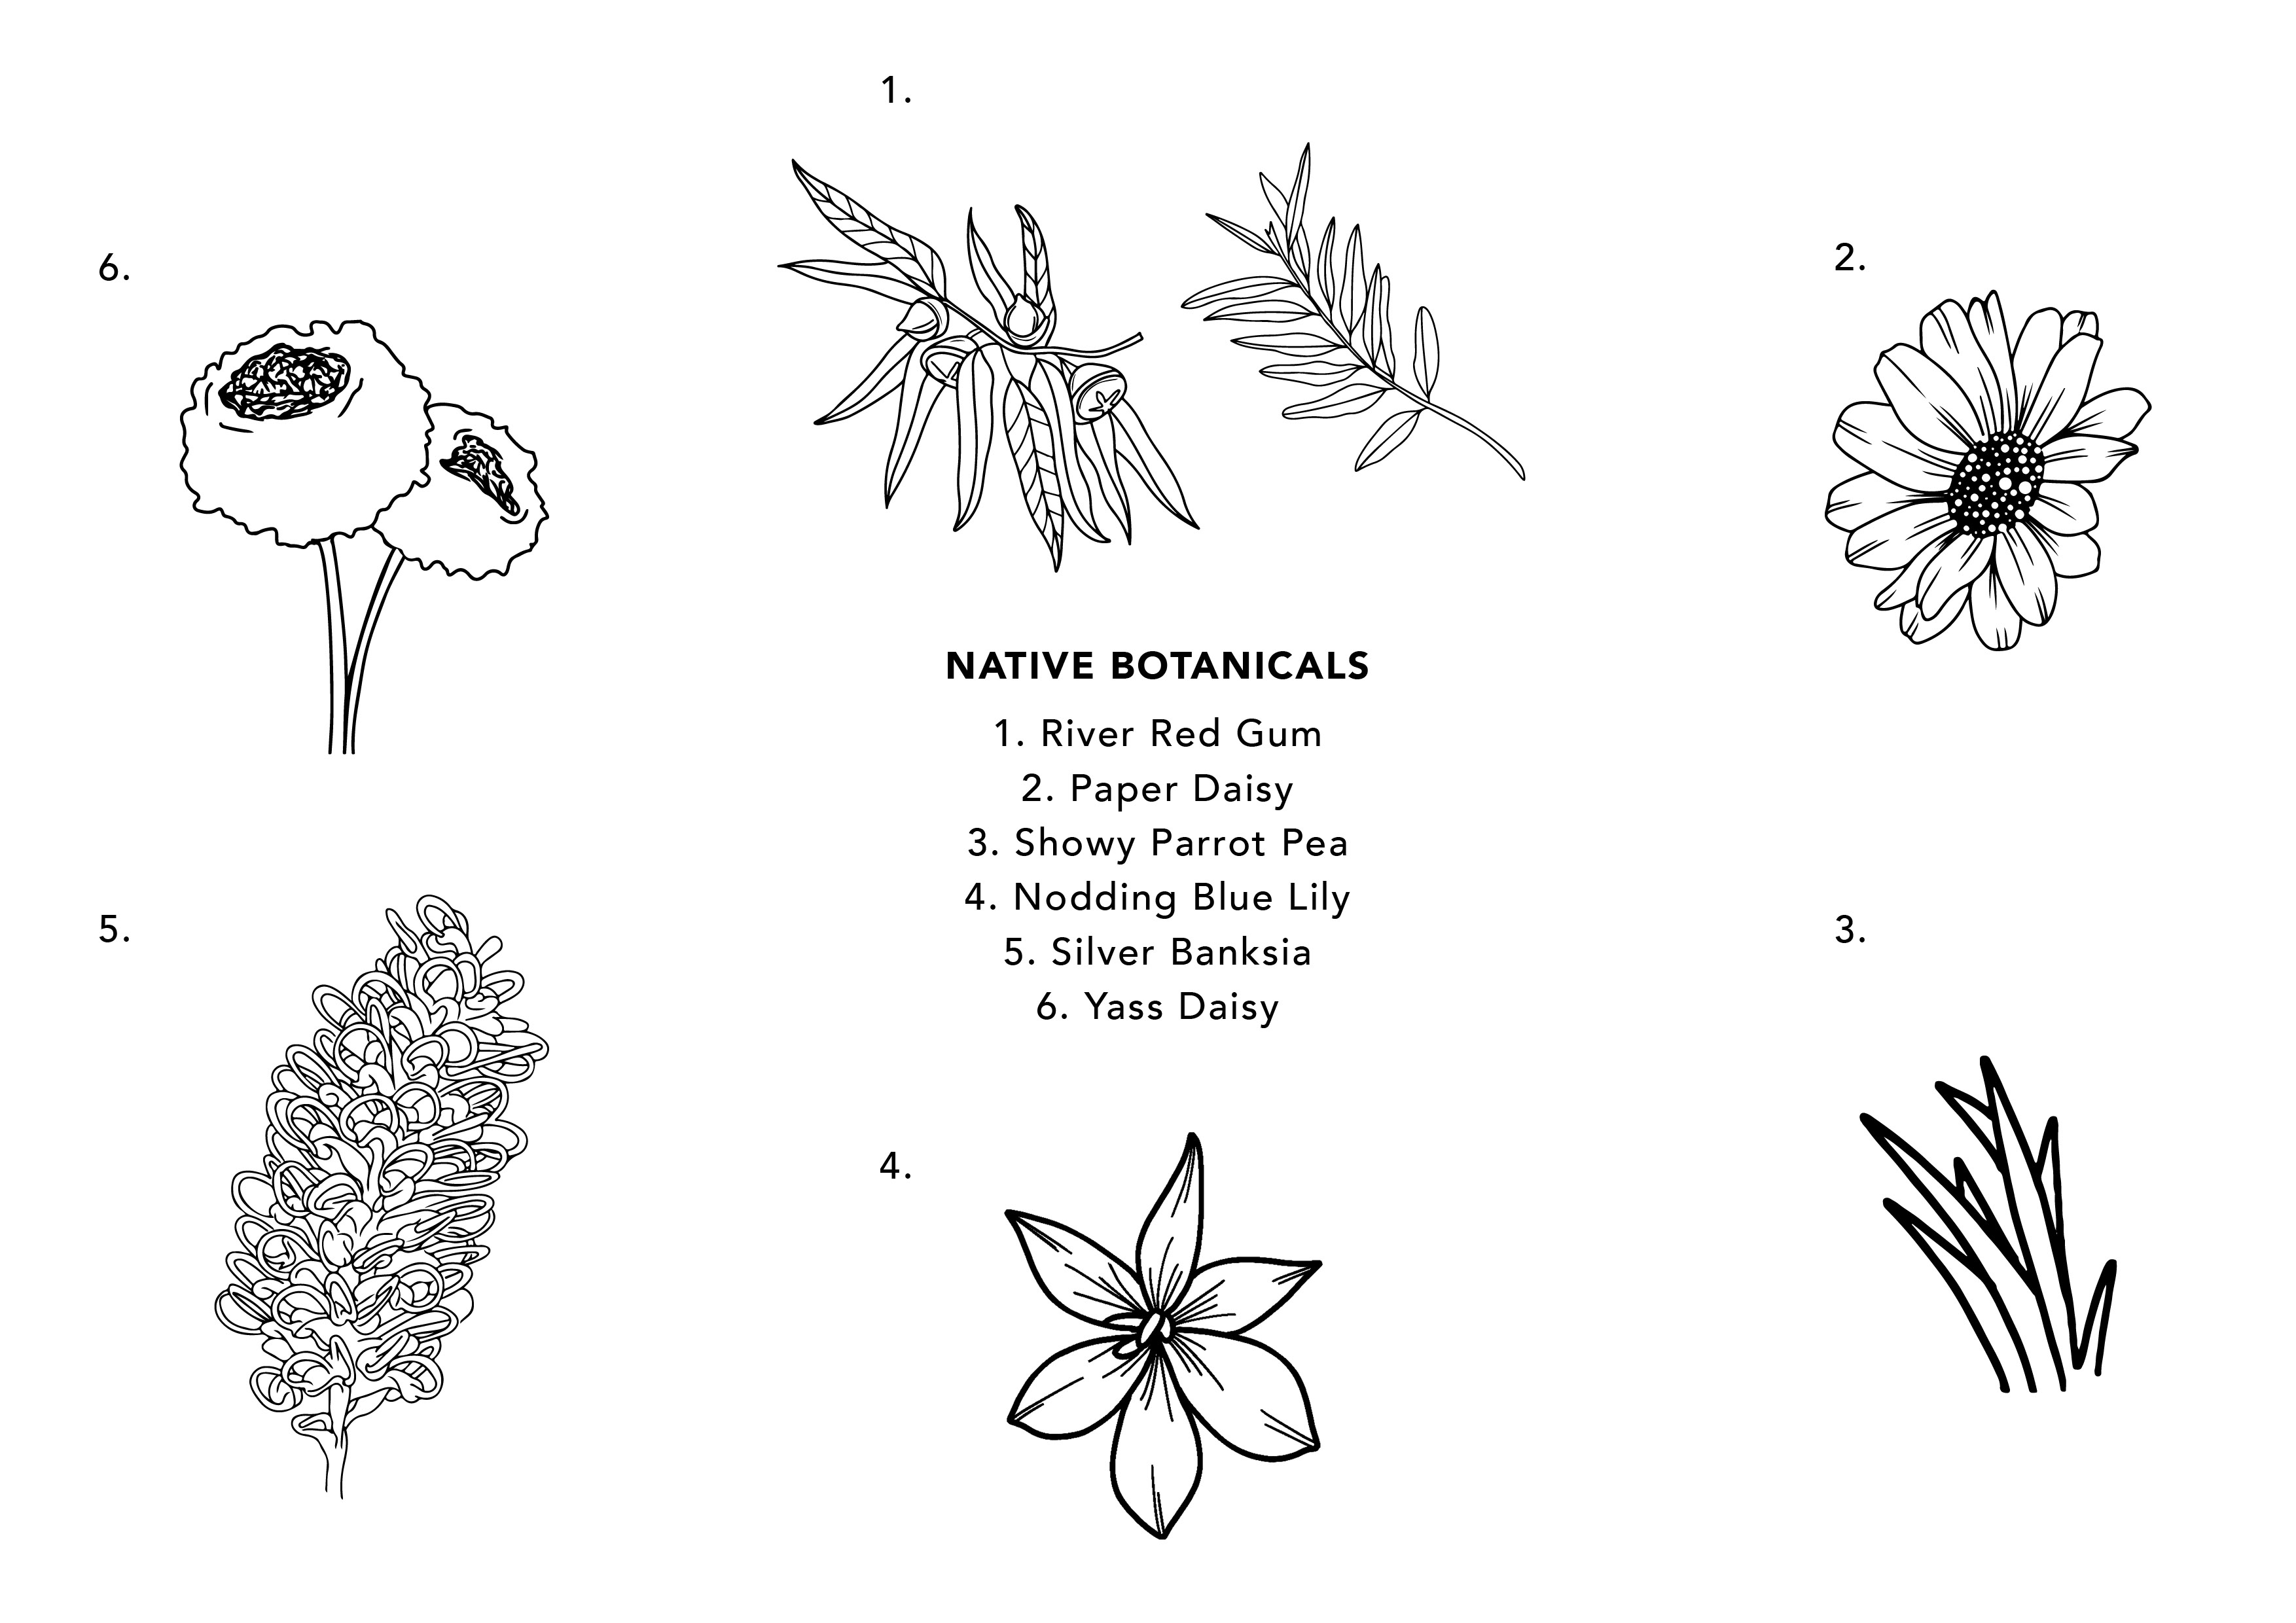 A description of each of the botanicals in the Wagga Wagga mindfulness colouring design